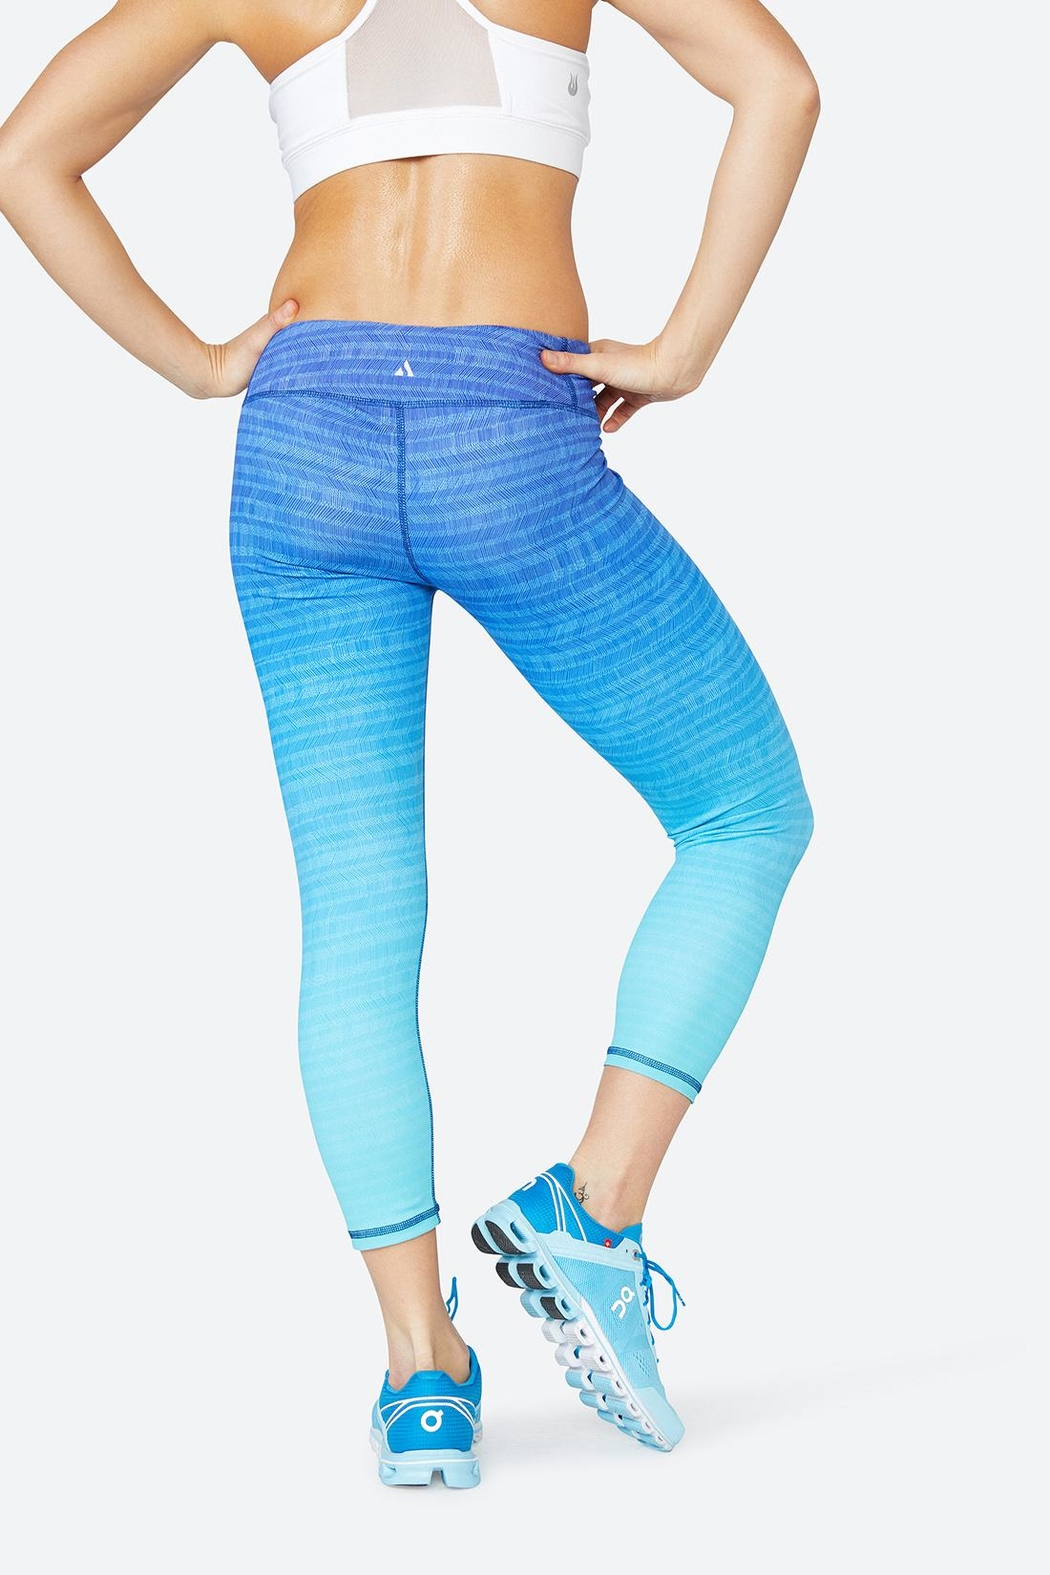 Solfire Blue Marianne Tight Leggings - Back Cropped Image